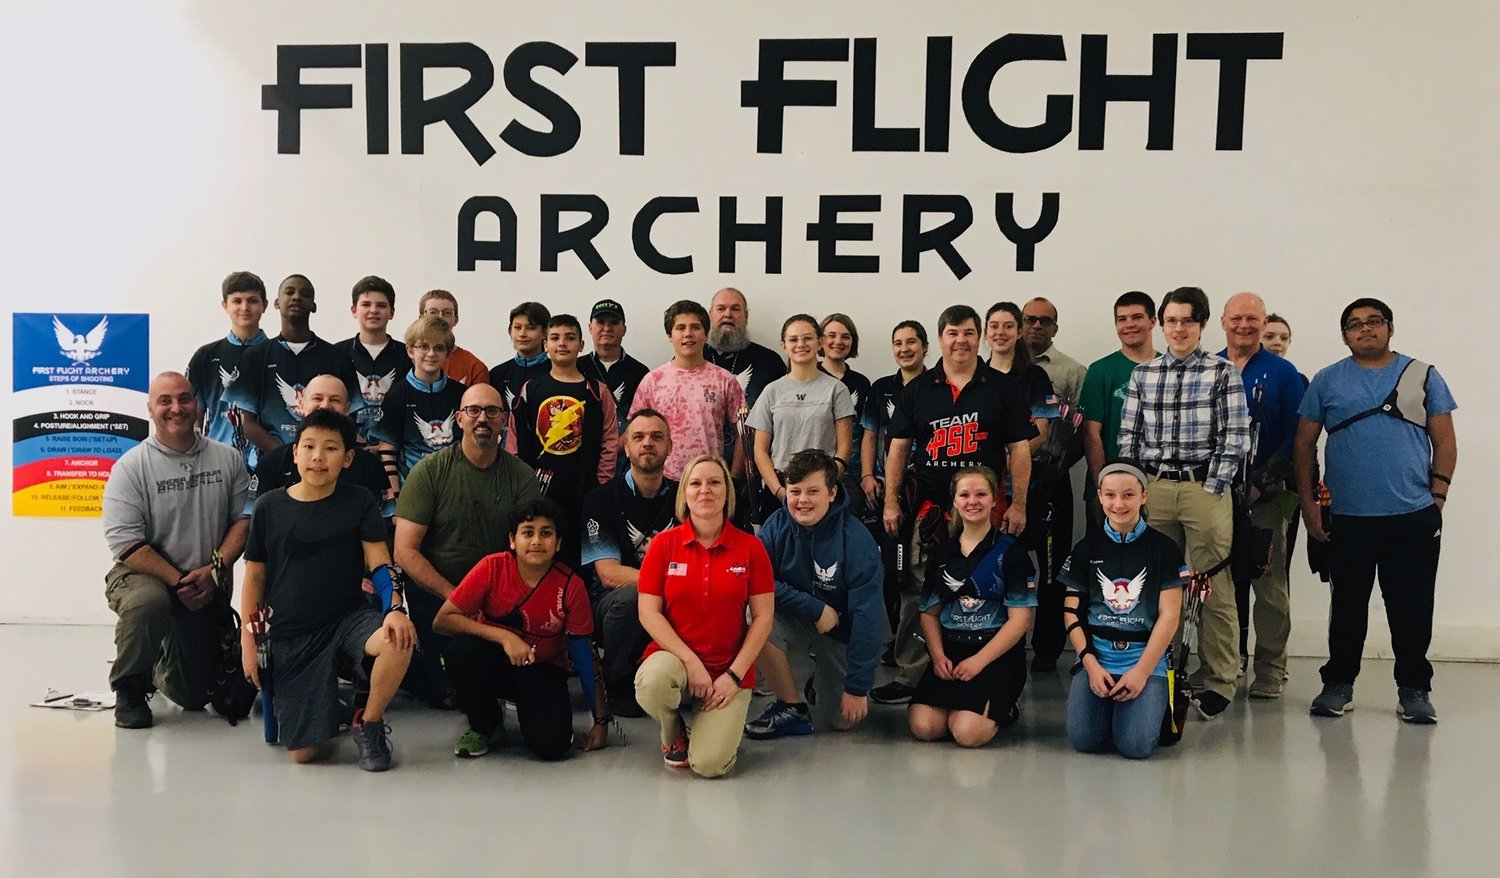 Lesley and some of her JOAD crew from First Flight Archery